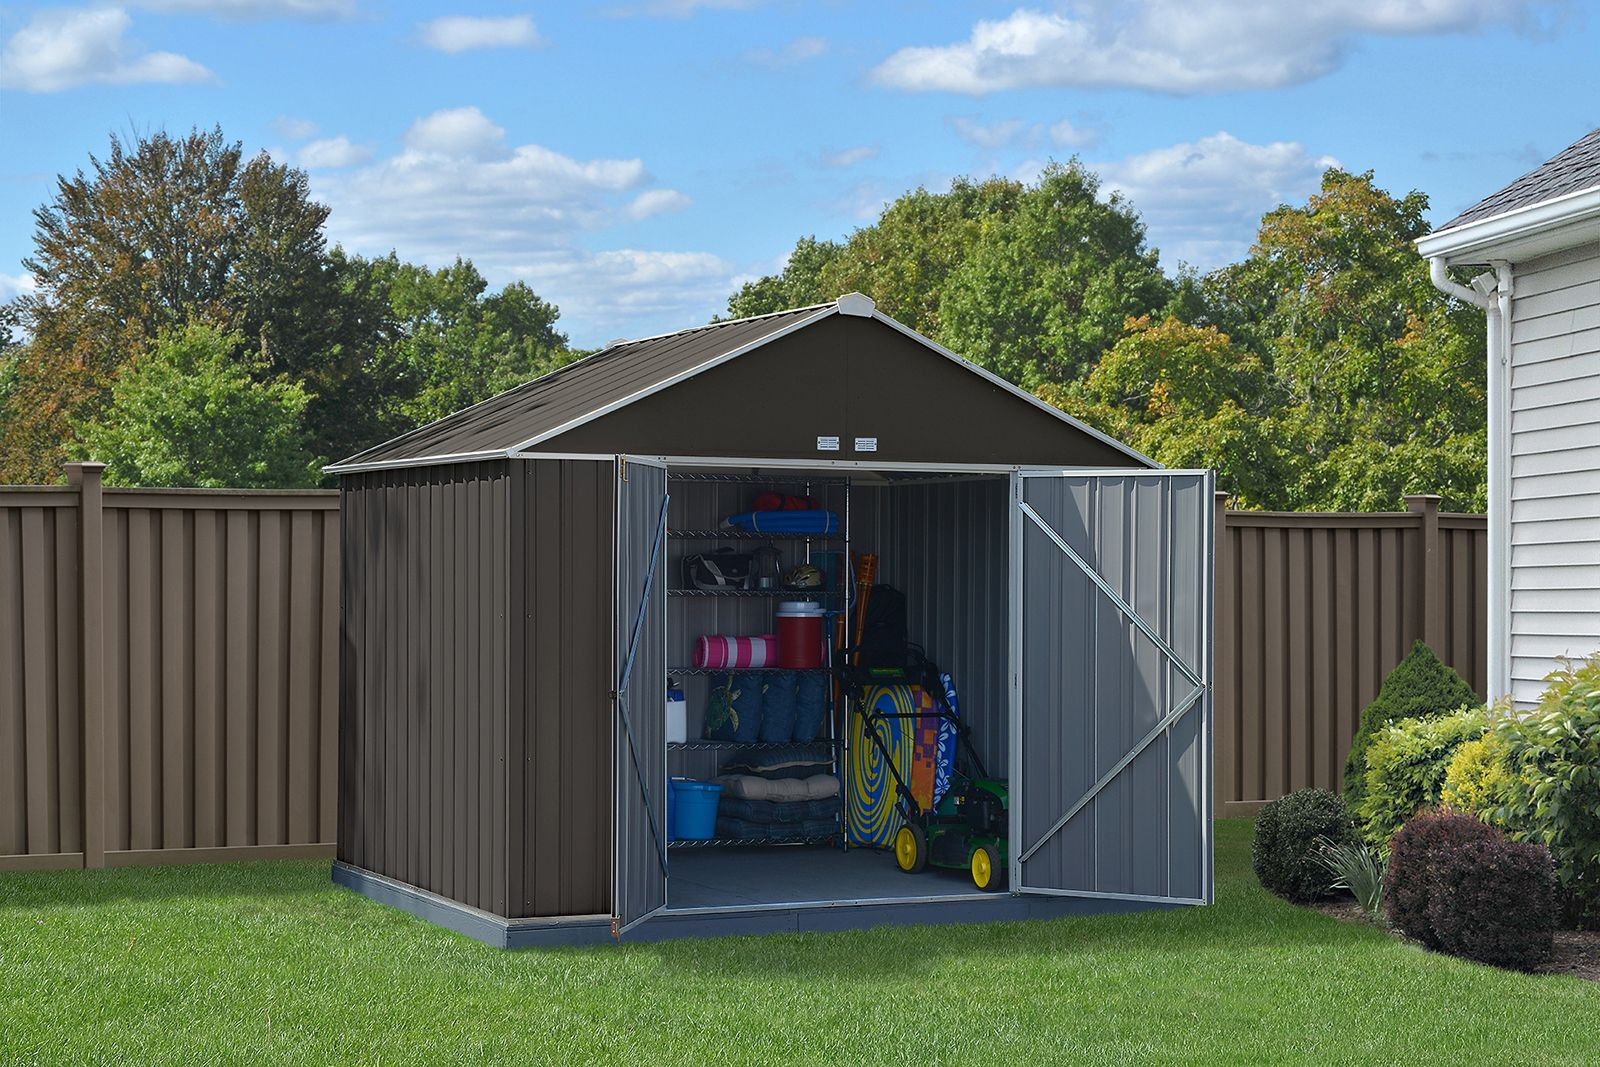 EZEE Shed Charcoal with Cream Trim